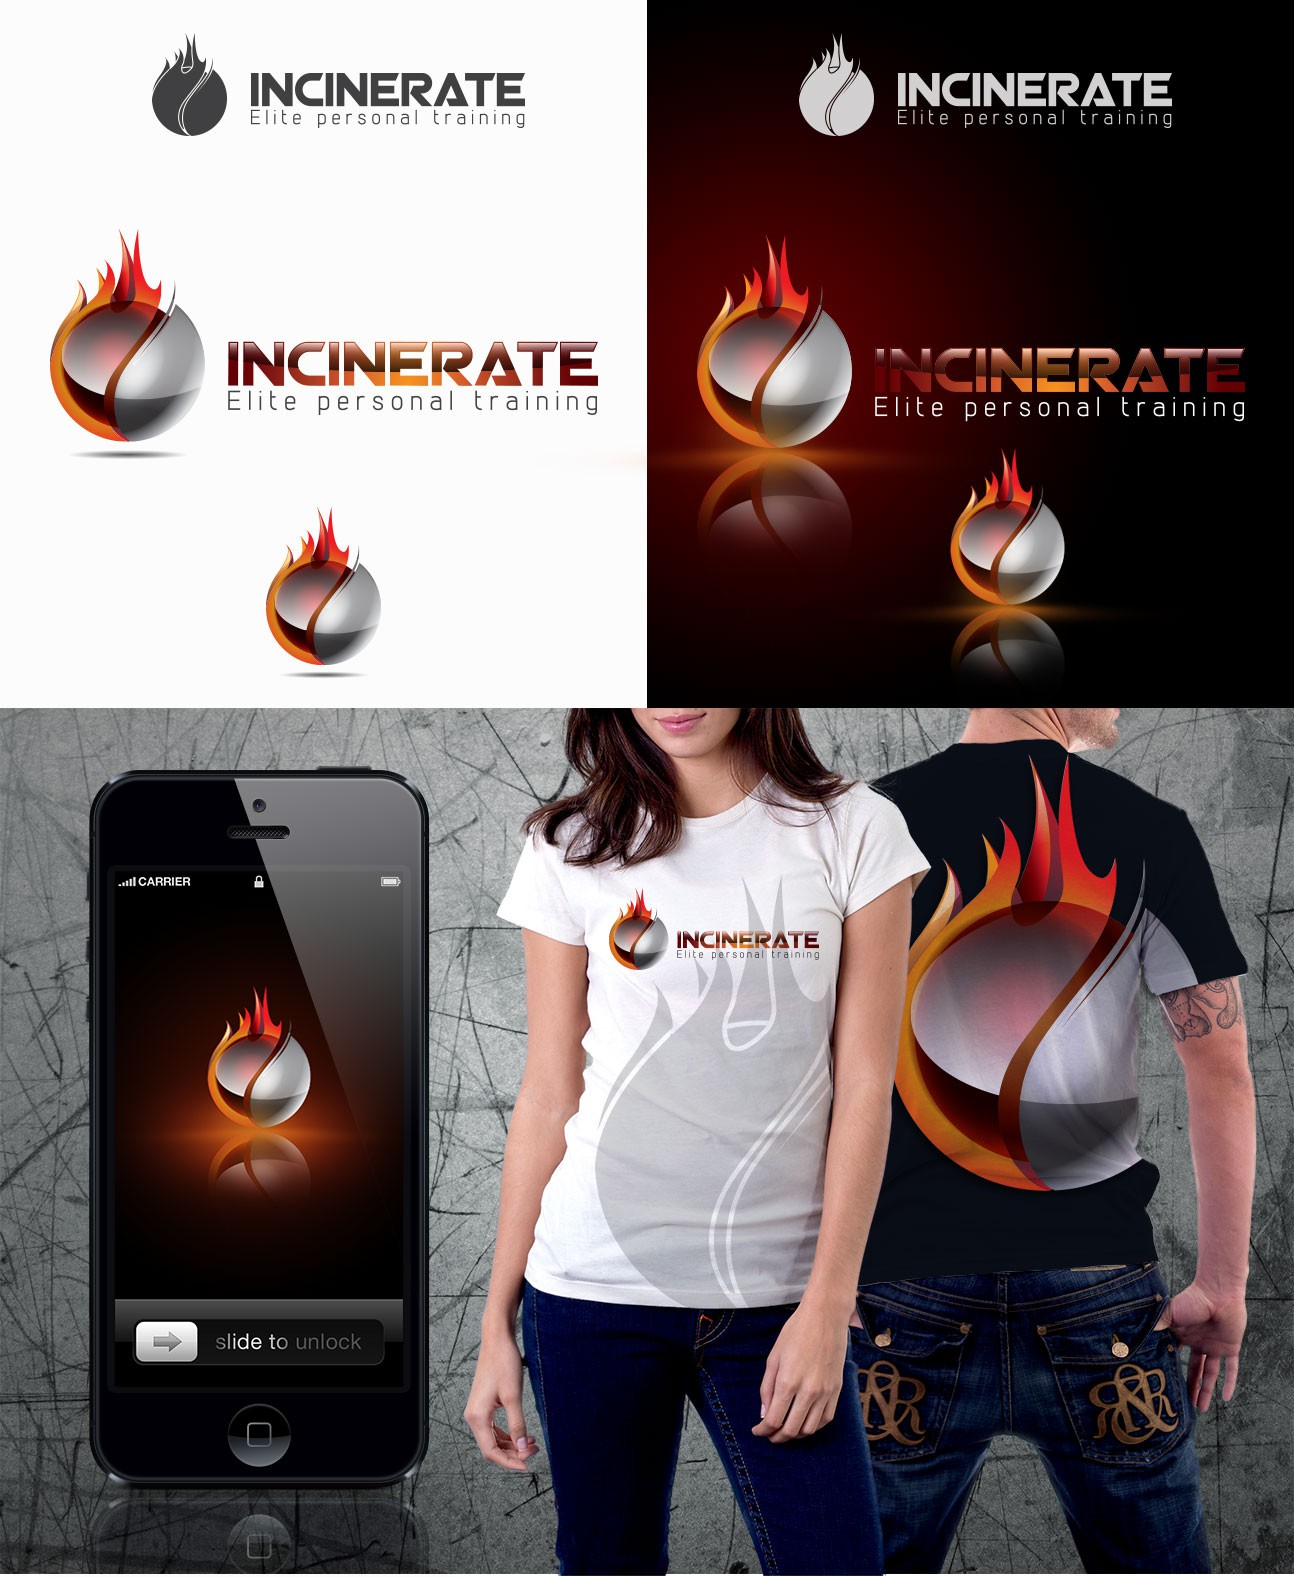 Incinerate  needs a new logo